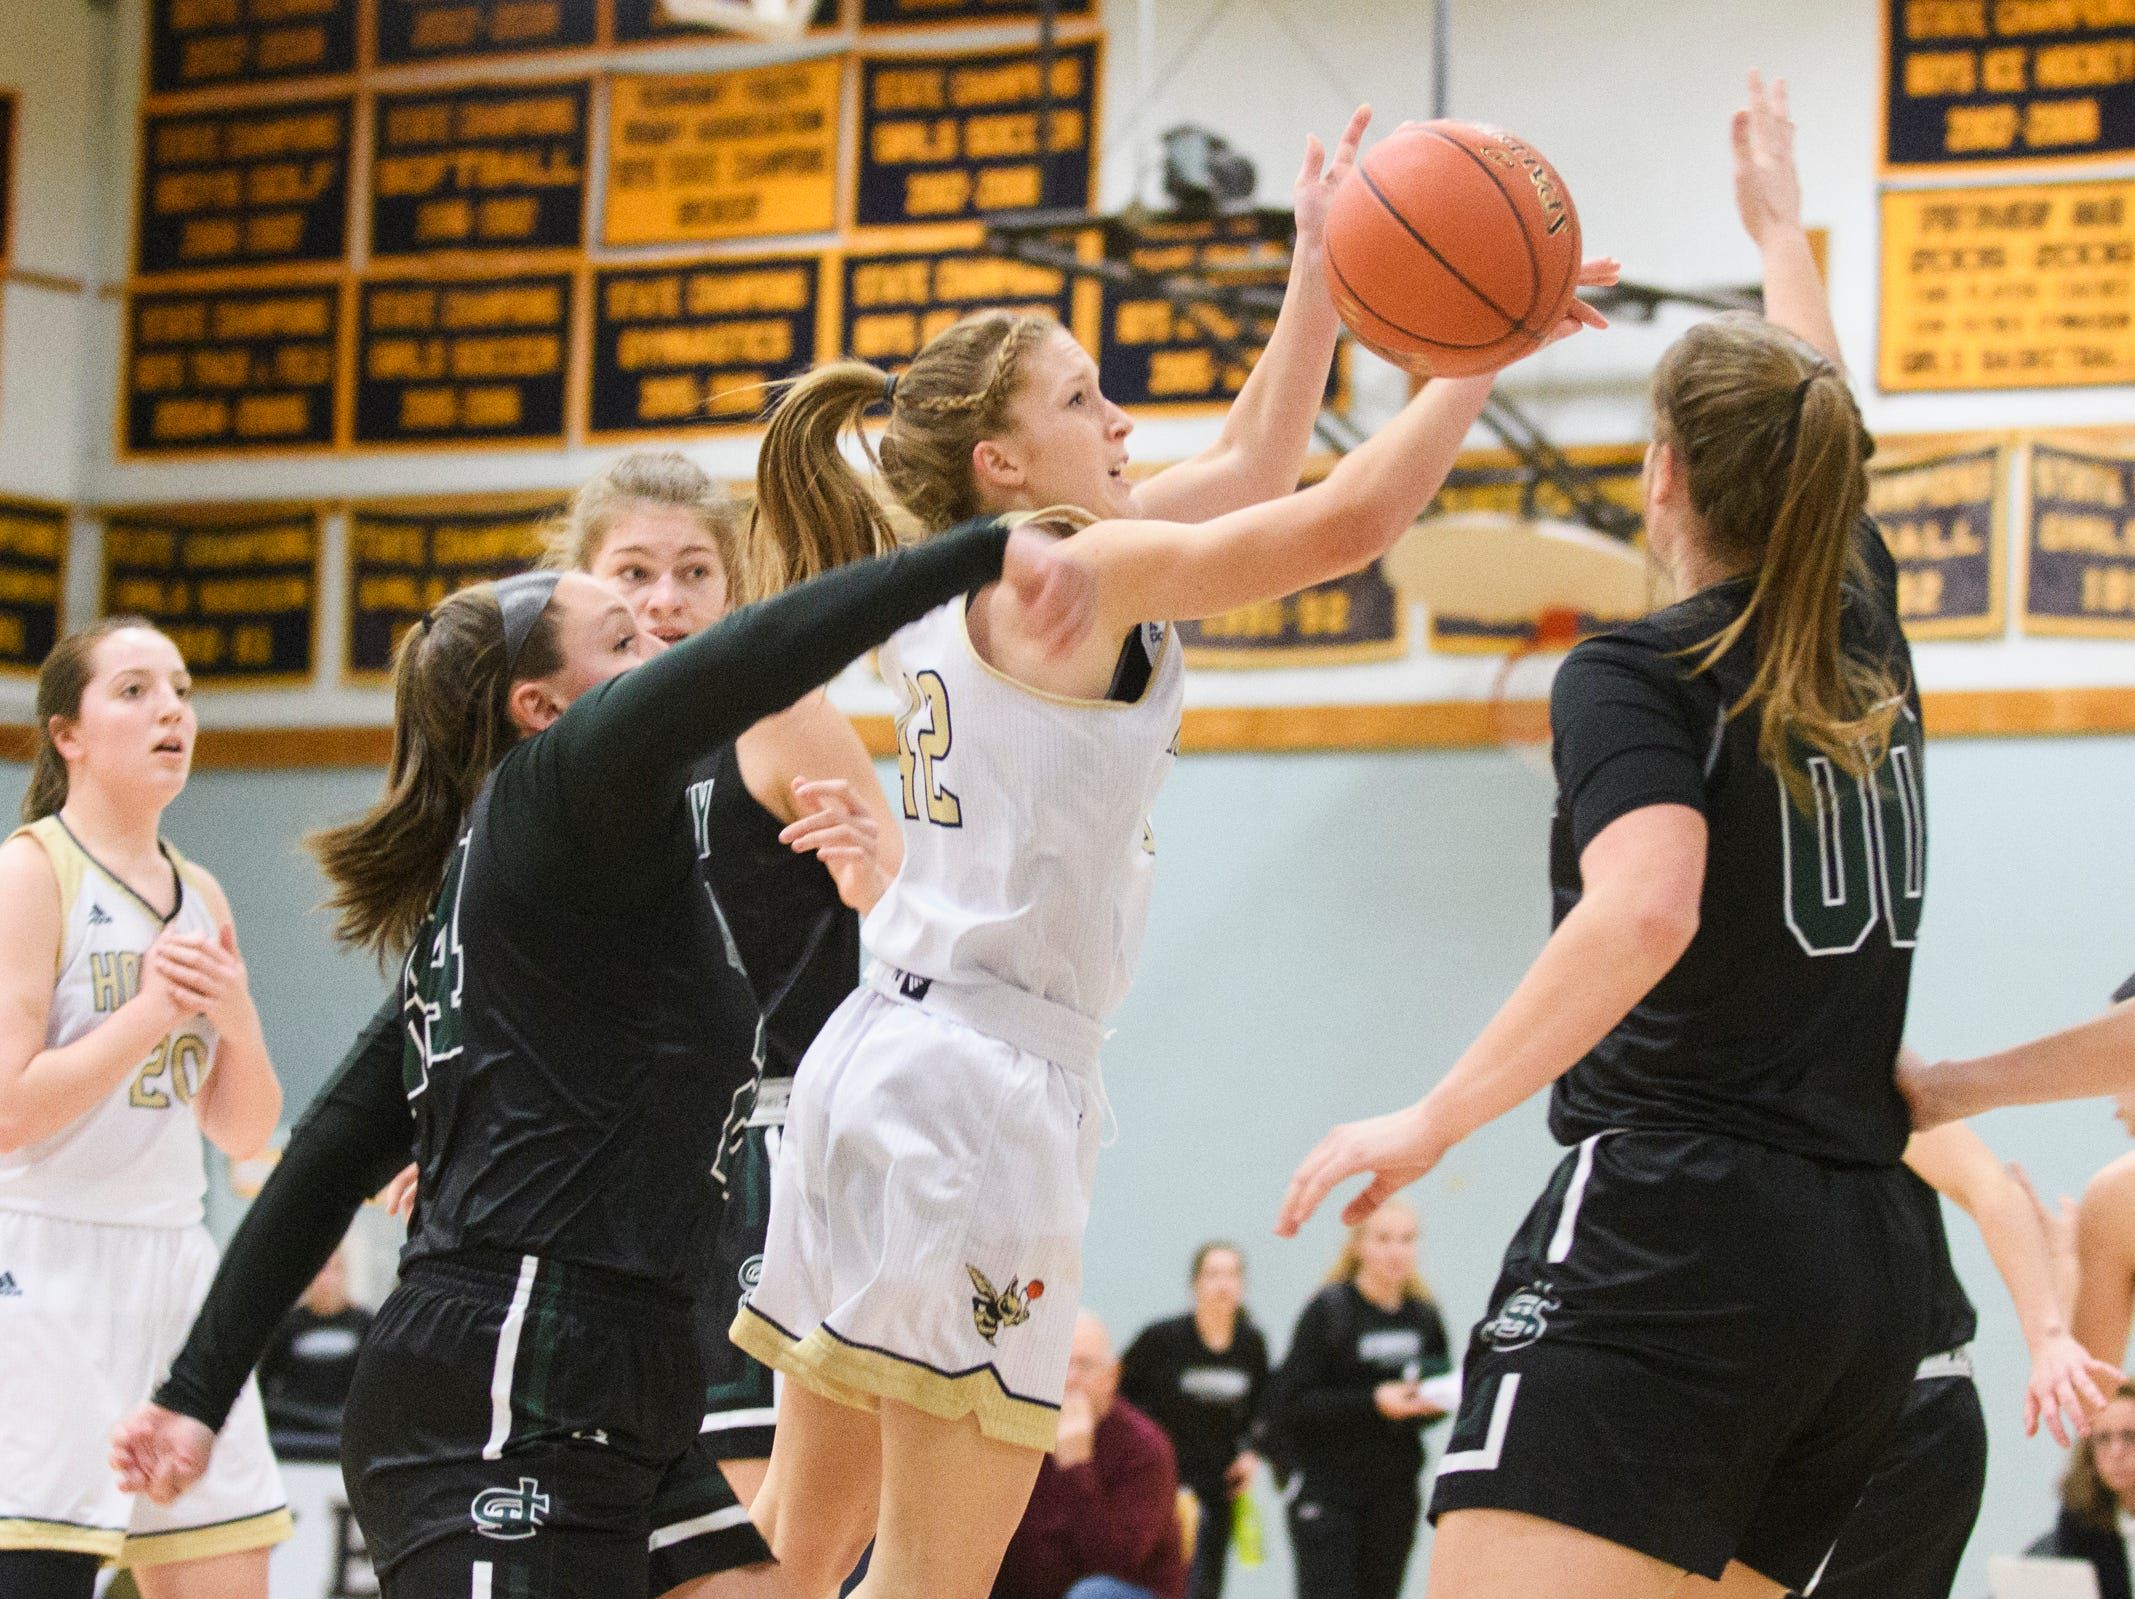 Essex's Anna Sabourin (42) loses control of the ball as she leaps for a lay up during the girls basketball game between the St. Johnsbury Hilltoppers and the Essex Hornets at Essex High School on Thursday night January 17, 2019 in Essex.